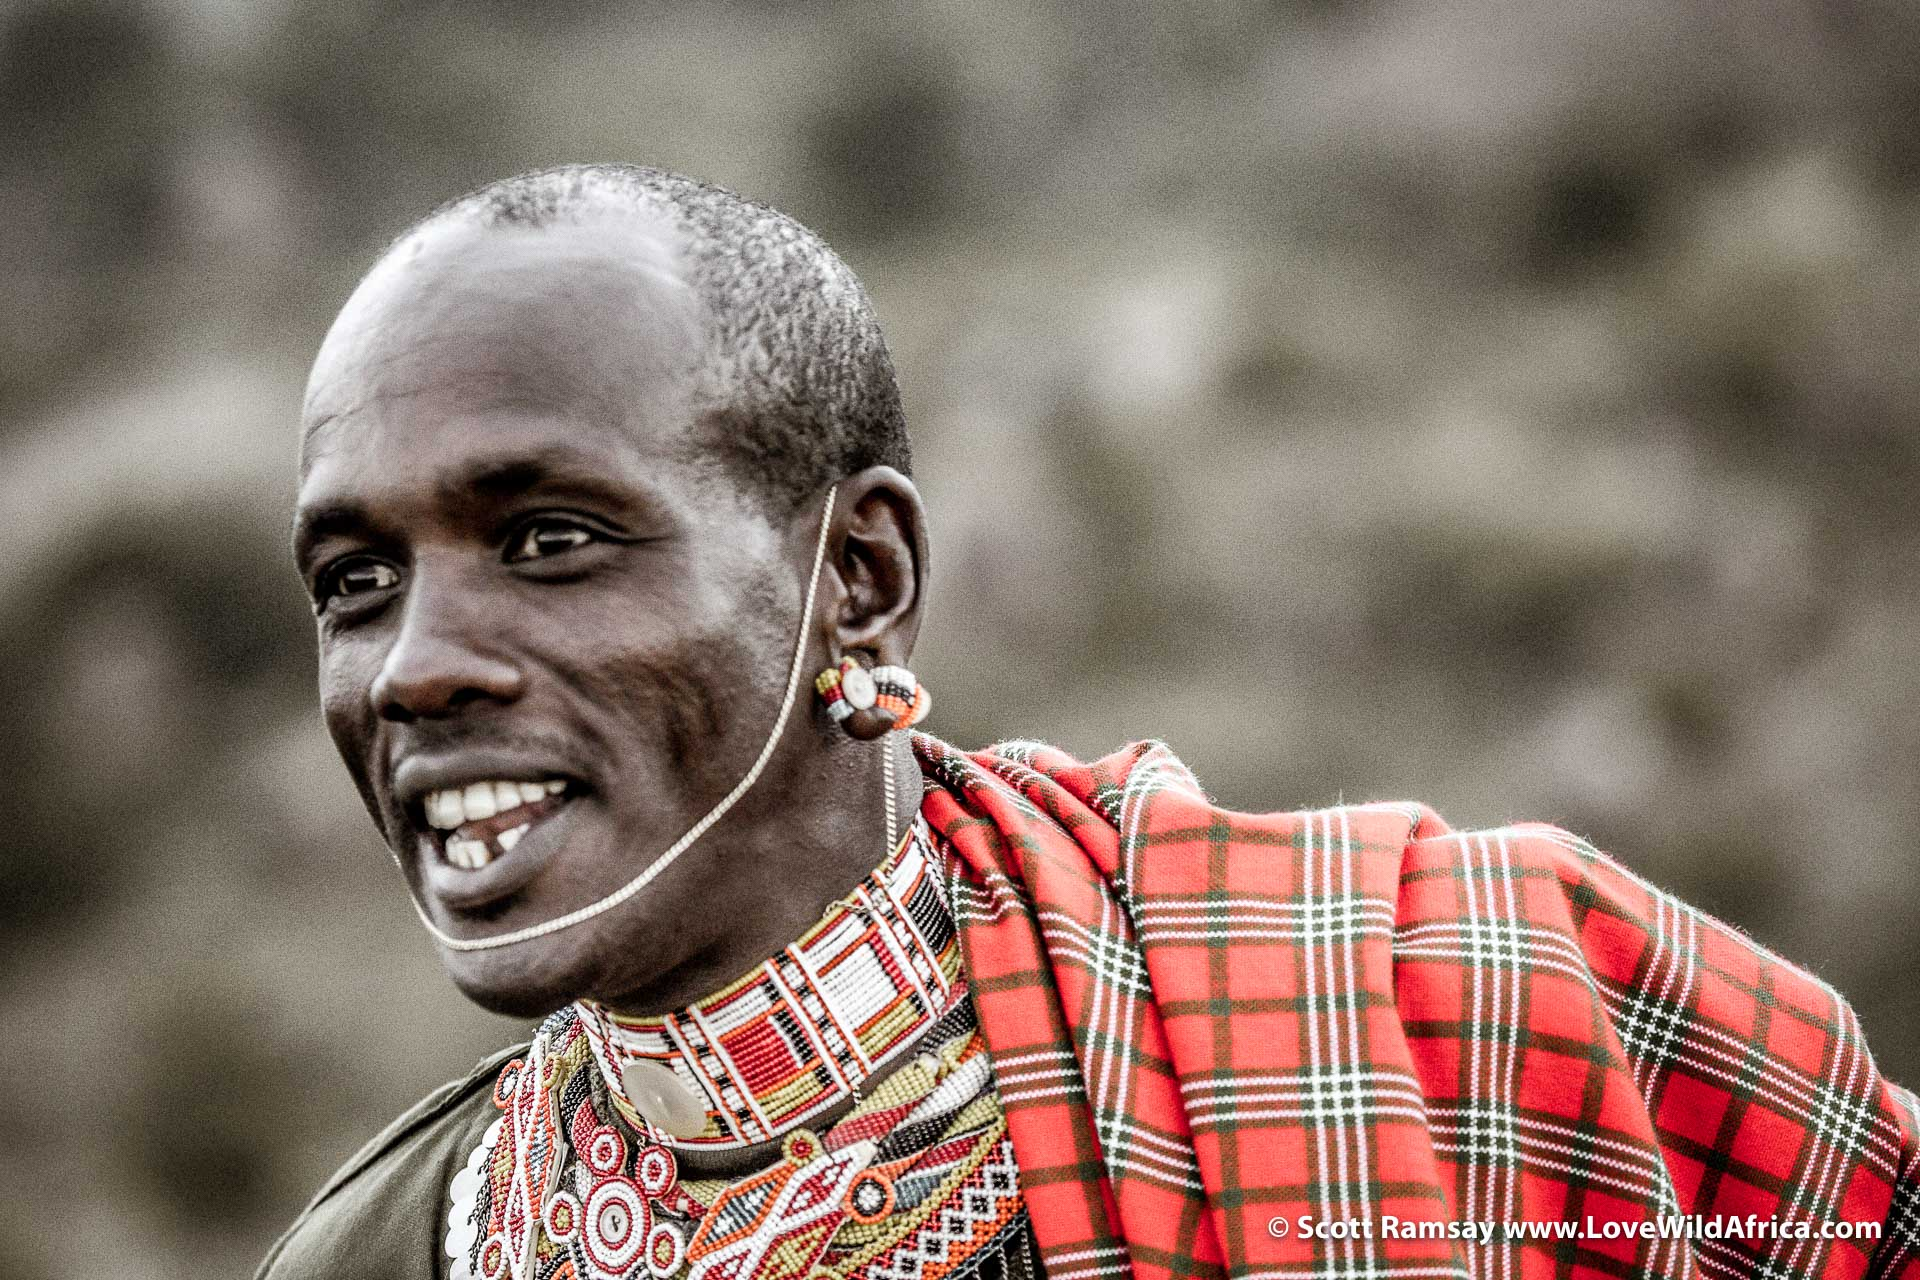 This is Sessen, a Samburu superhero, and also friend and ally of the Carr-Hartleys. He was everpresent during our safari, and kept a close eye on wandering children in case hungry lions or grumpy buffalo came close.